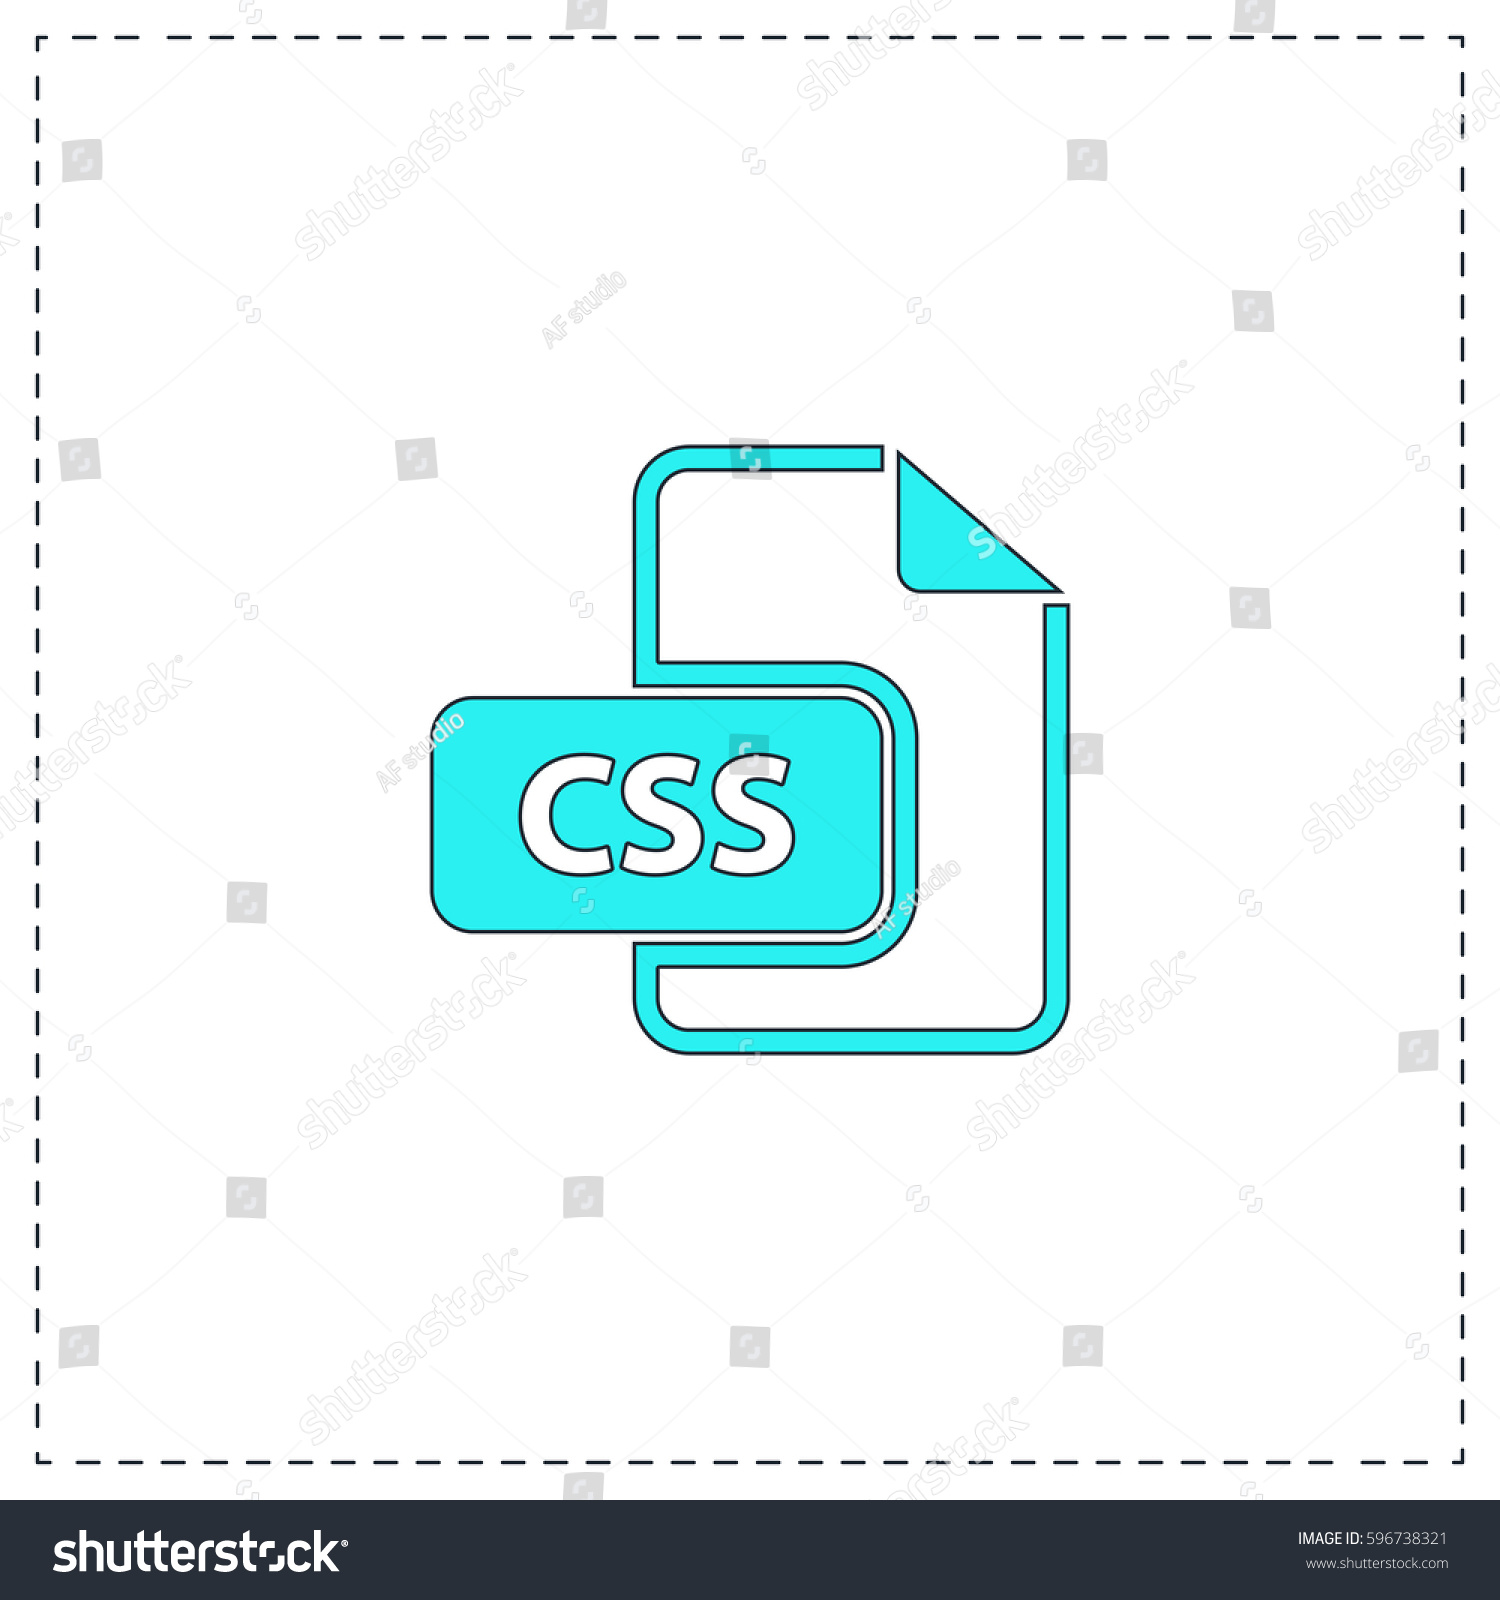 Css Outline Vector Icon Black Editable Stock Vector (Royalty Free